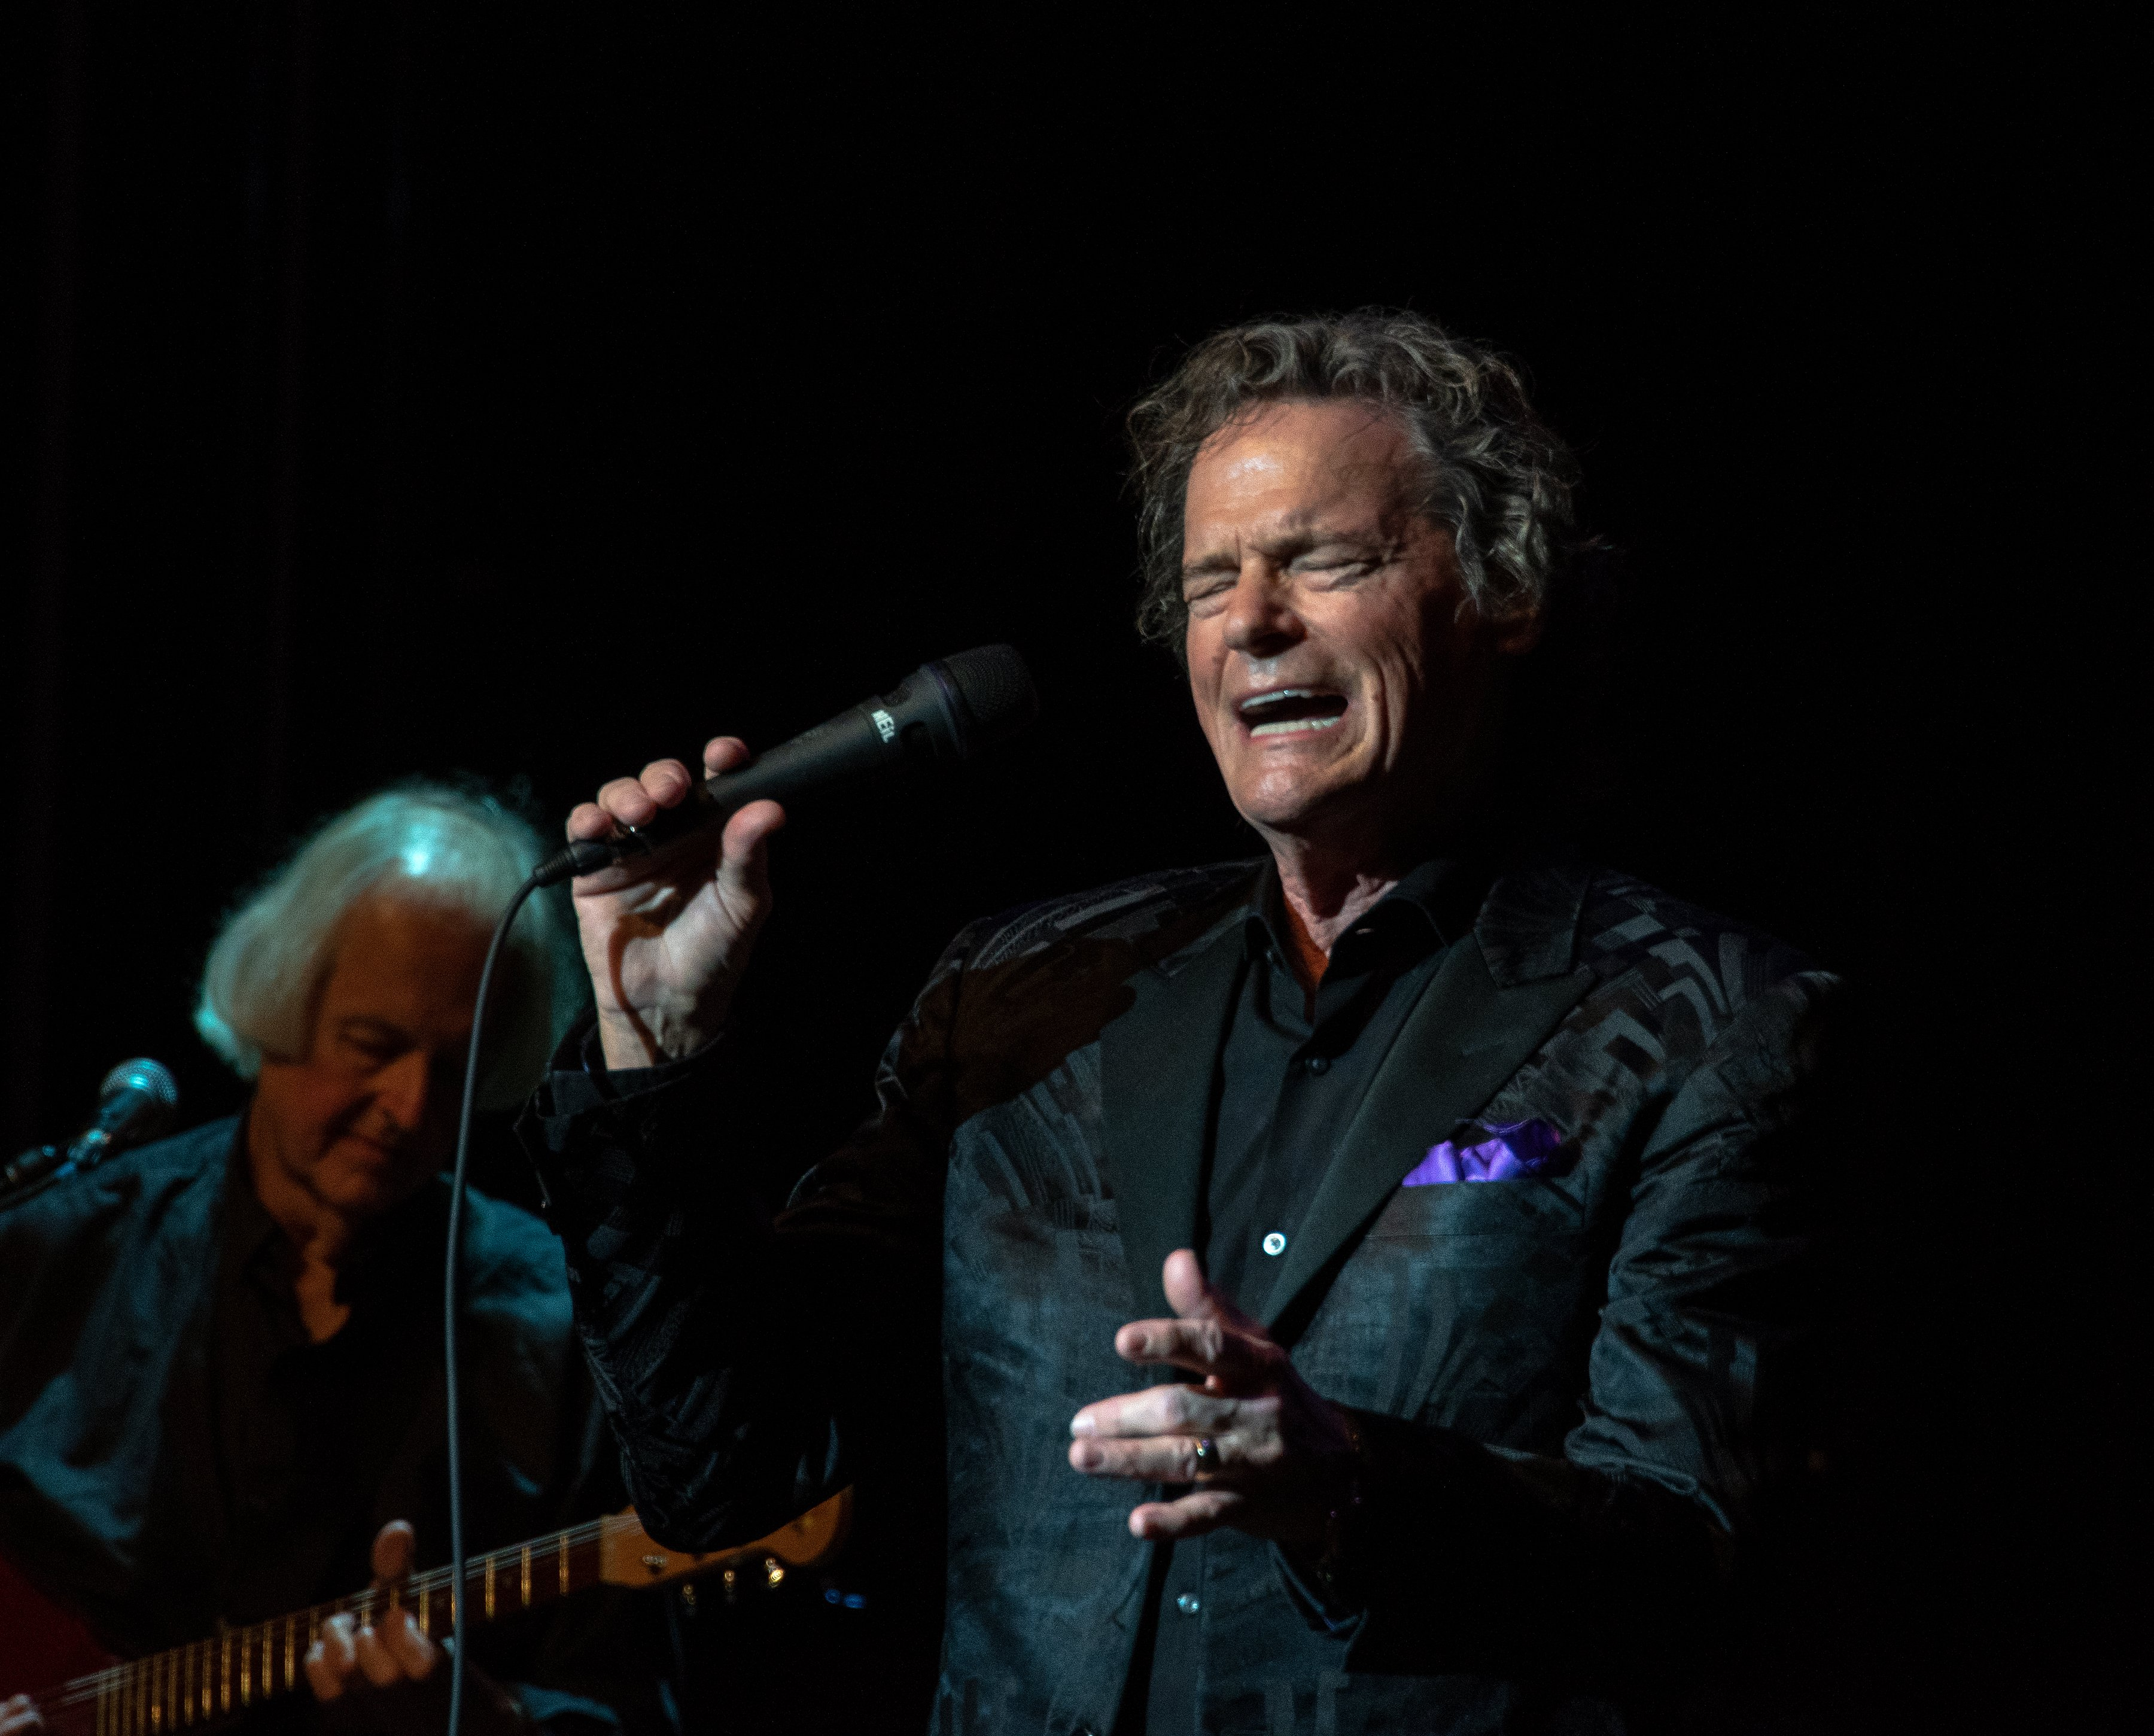 BJ Thomas performs on stage at the historic Granada Theater | Photo: Shutterstock